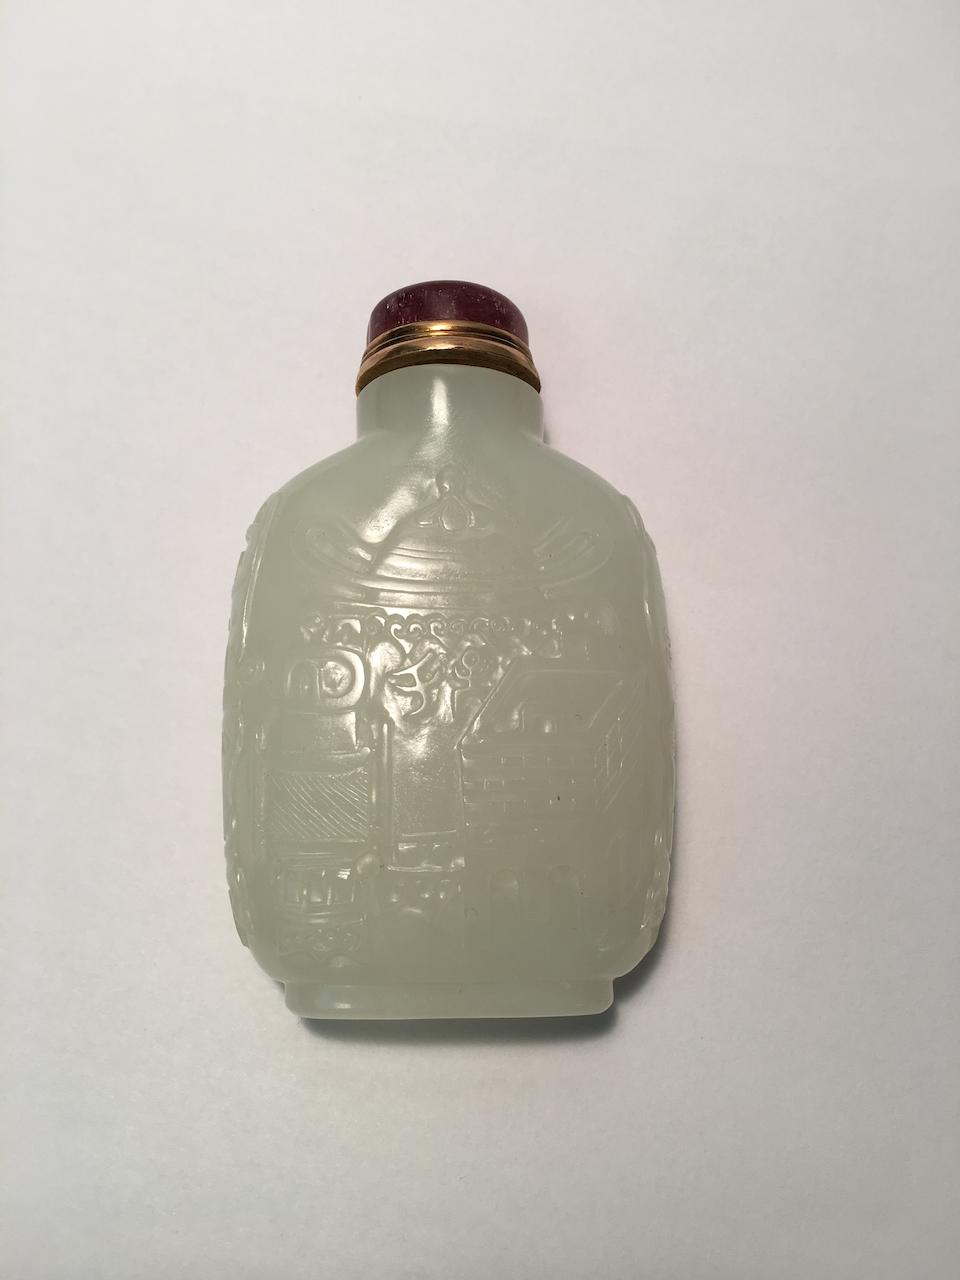 A WHITE JADE 'BRONZE RITUAL VESSELS' SNUFF BOTTLE 1750-1800, Probably imperial, attributed to the Palace Workshops